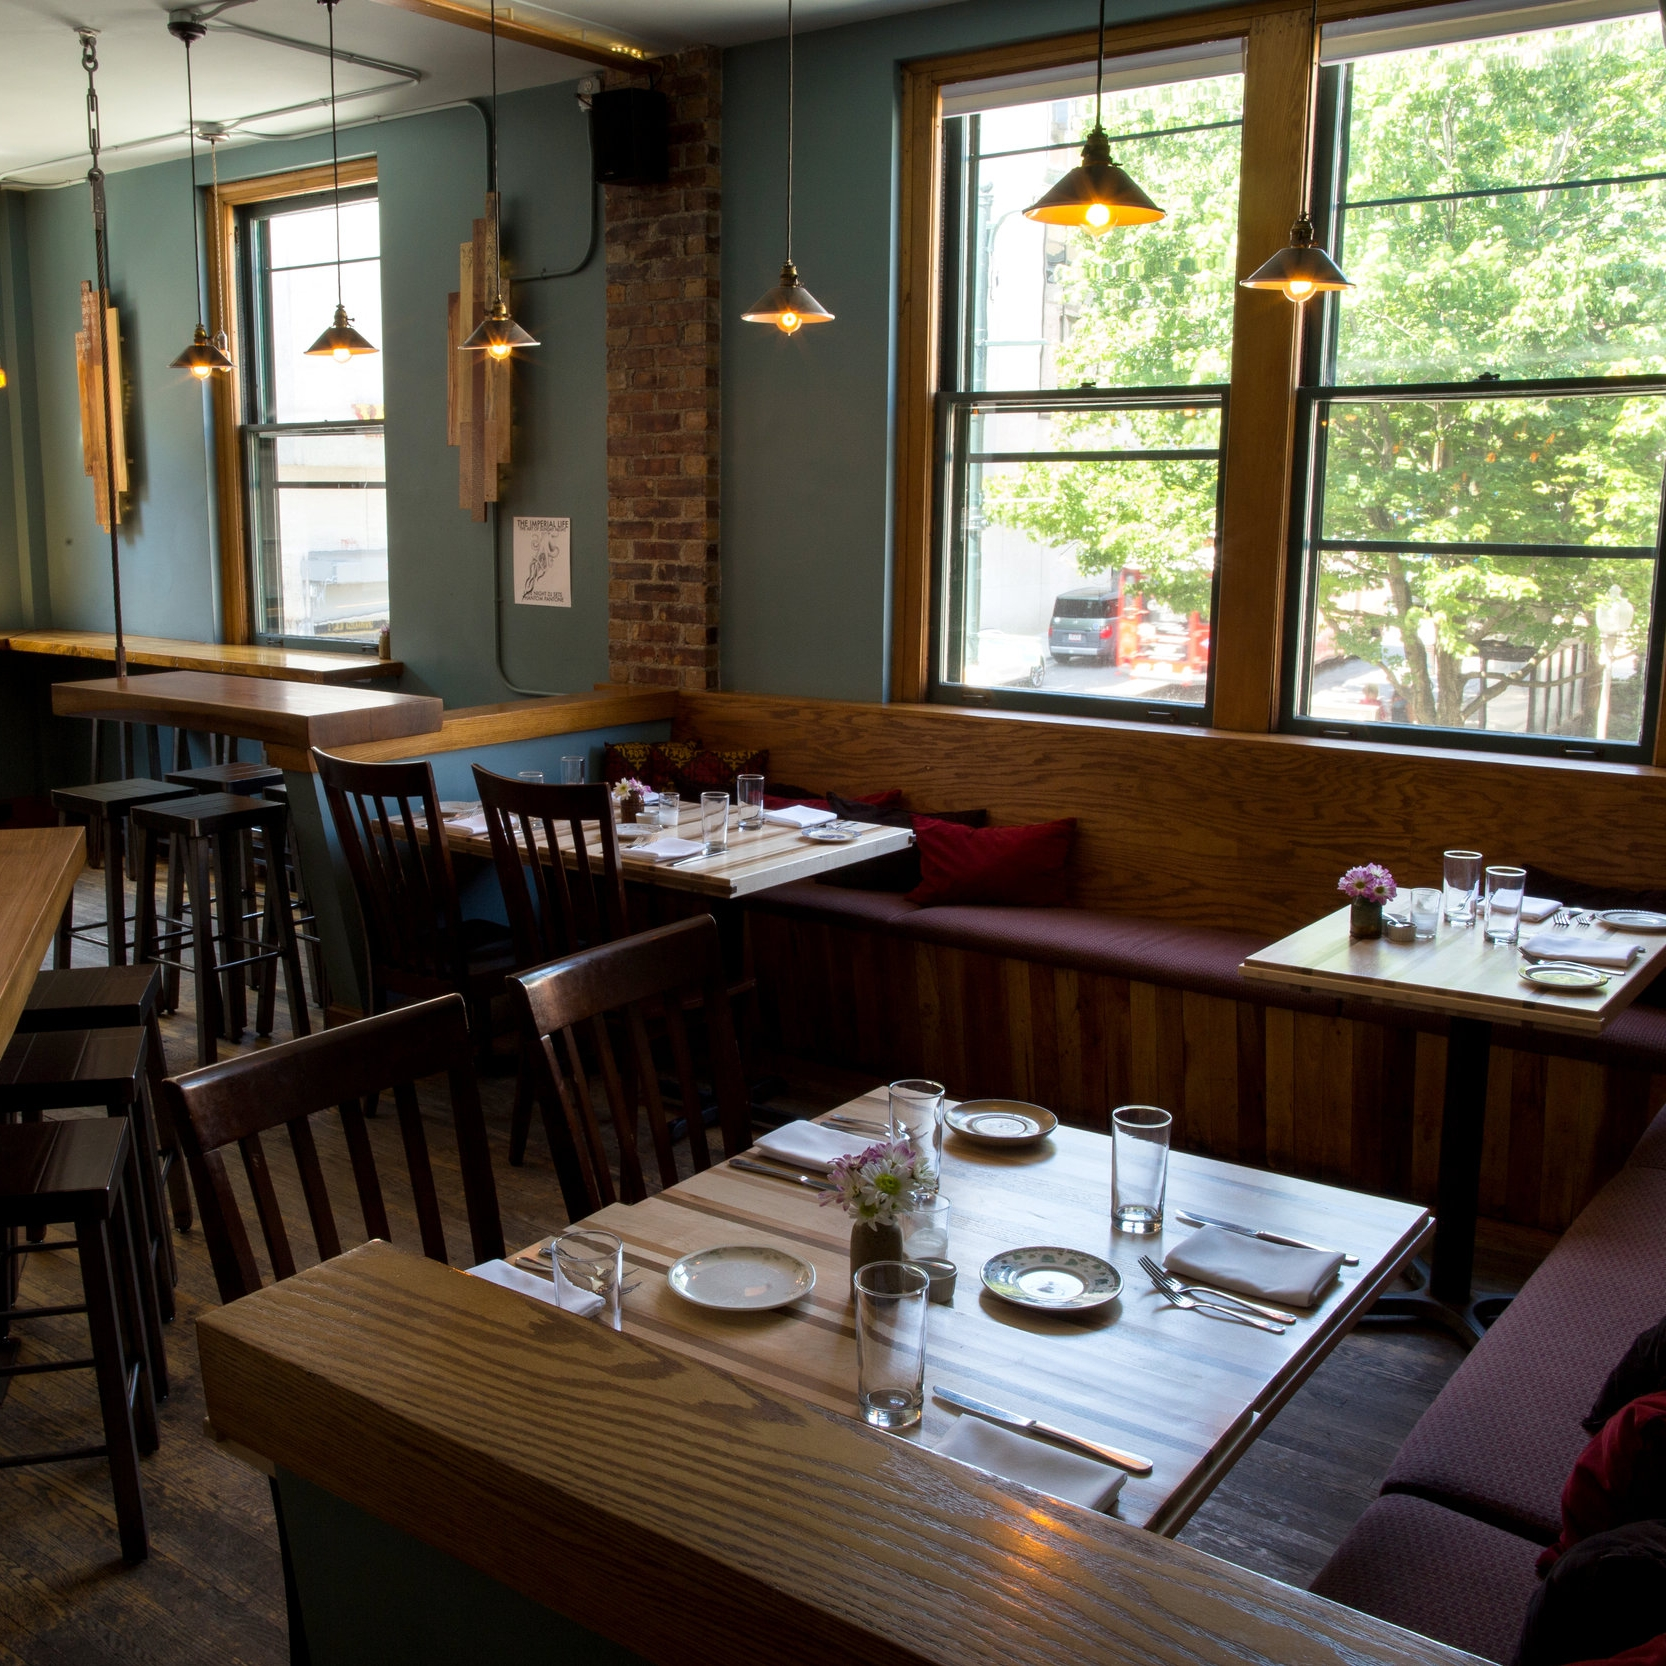 The Full Affair - $105/headHors d'ouervres + cocktailAppetizer + glass of wineMid-courseEntree + glass of wineDessertSubject to change